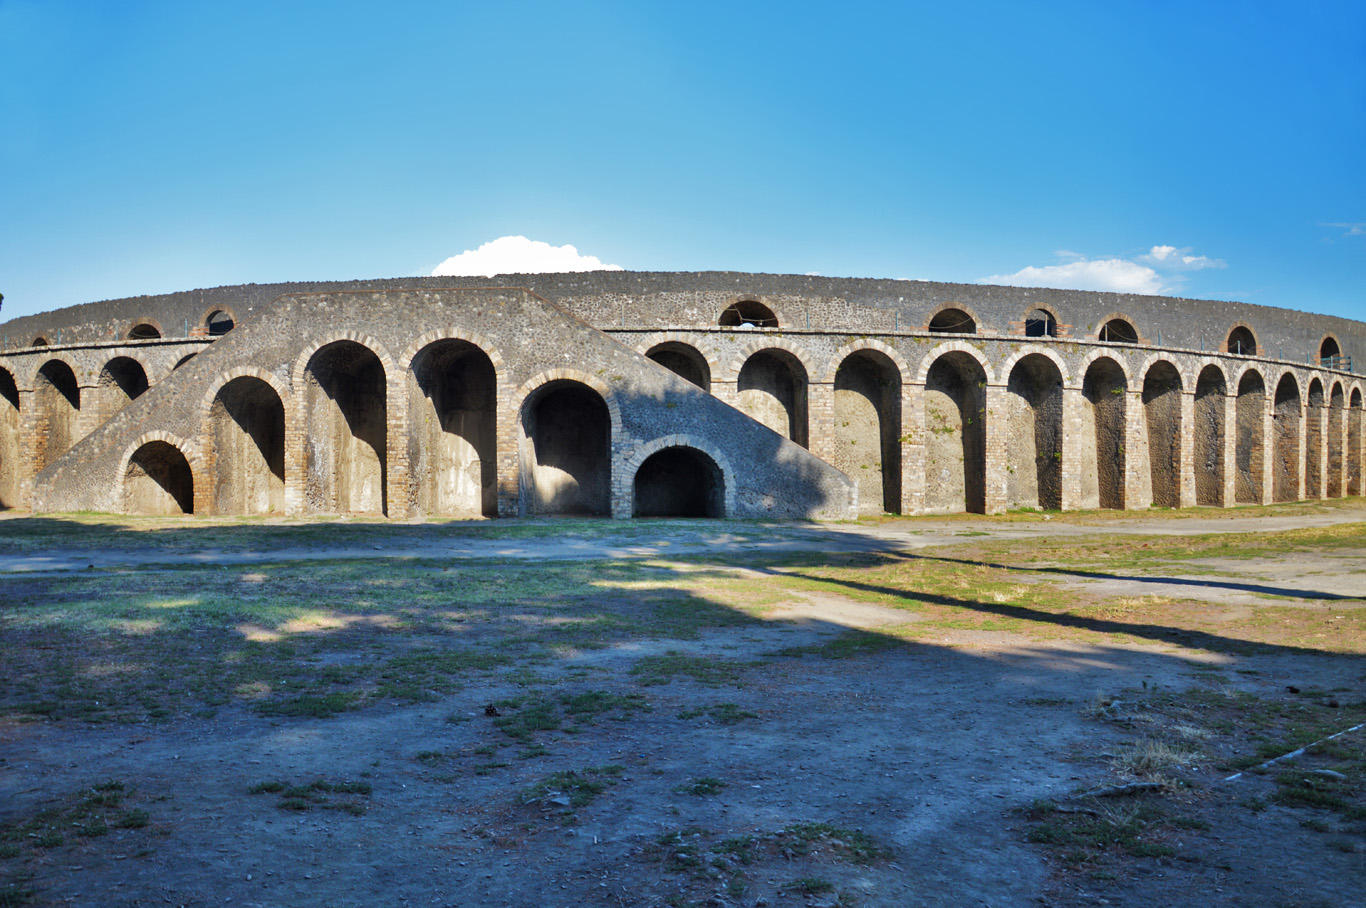 The walls of the amphitheater